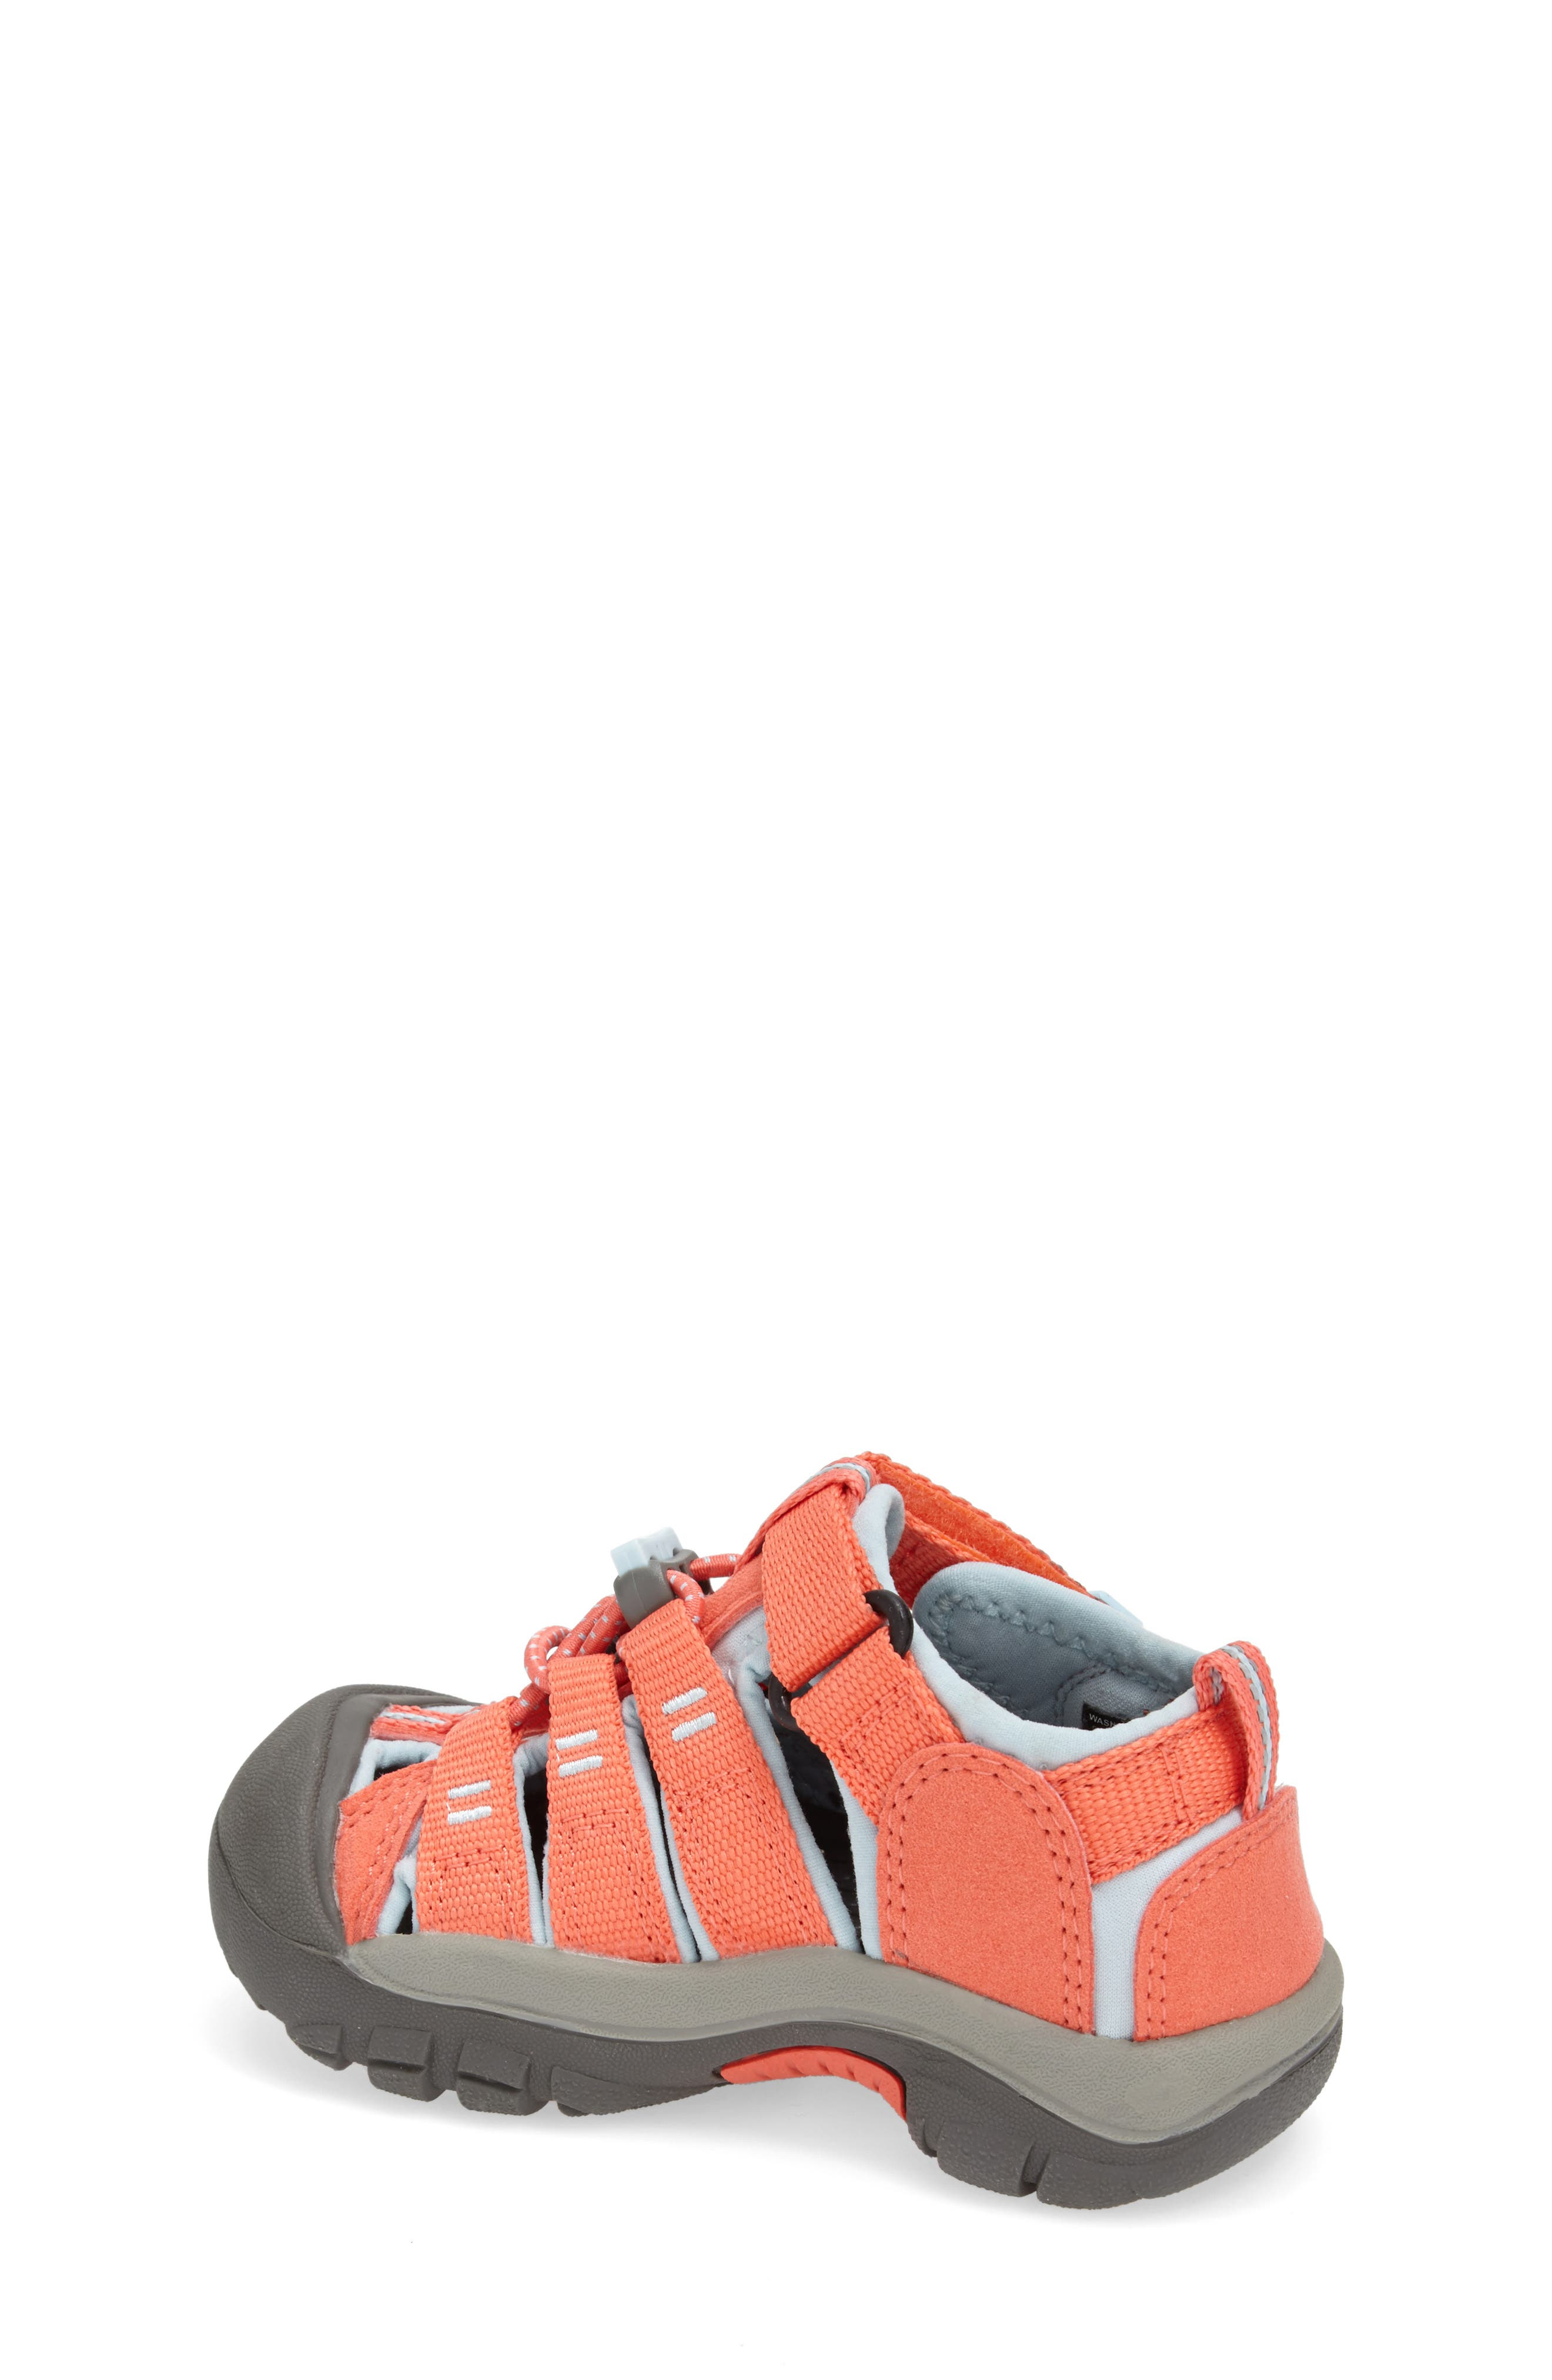 ,                             'Newport H2' Water Friendly Sandal,                             Alternate thumbnail 411, color,                             652